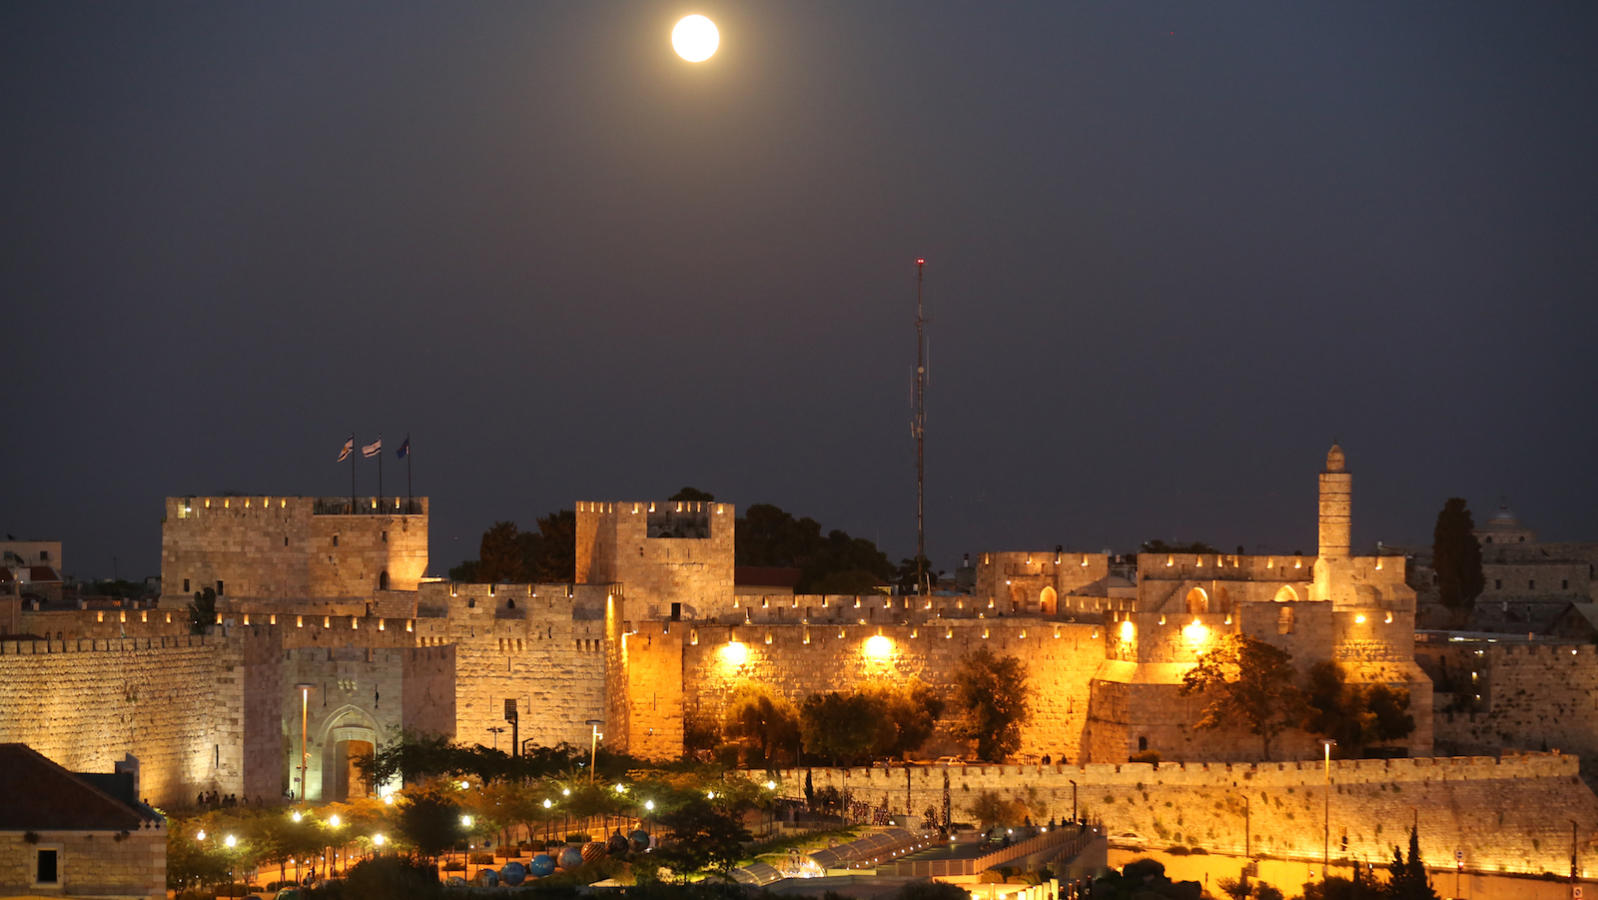 Old city Jerusalem at night David's Tower and the Old City walls